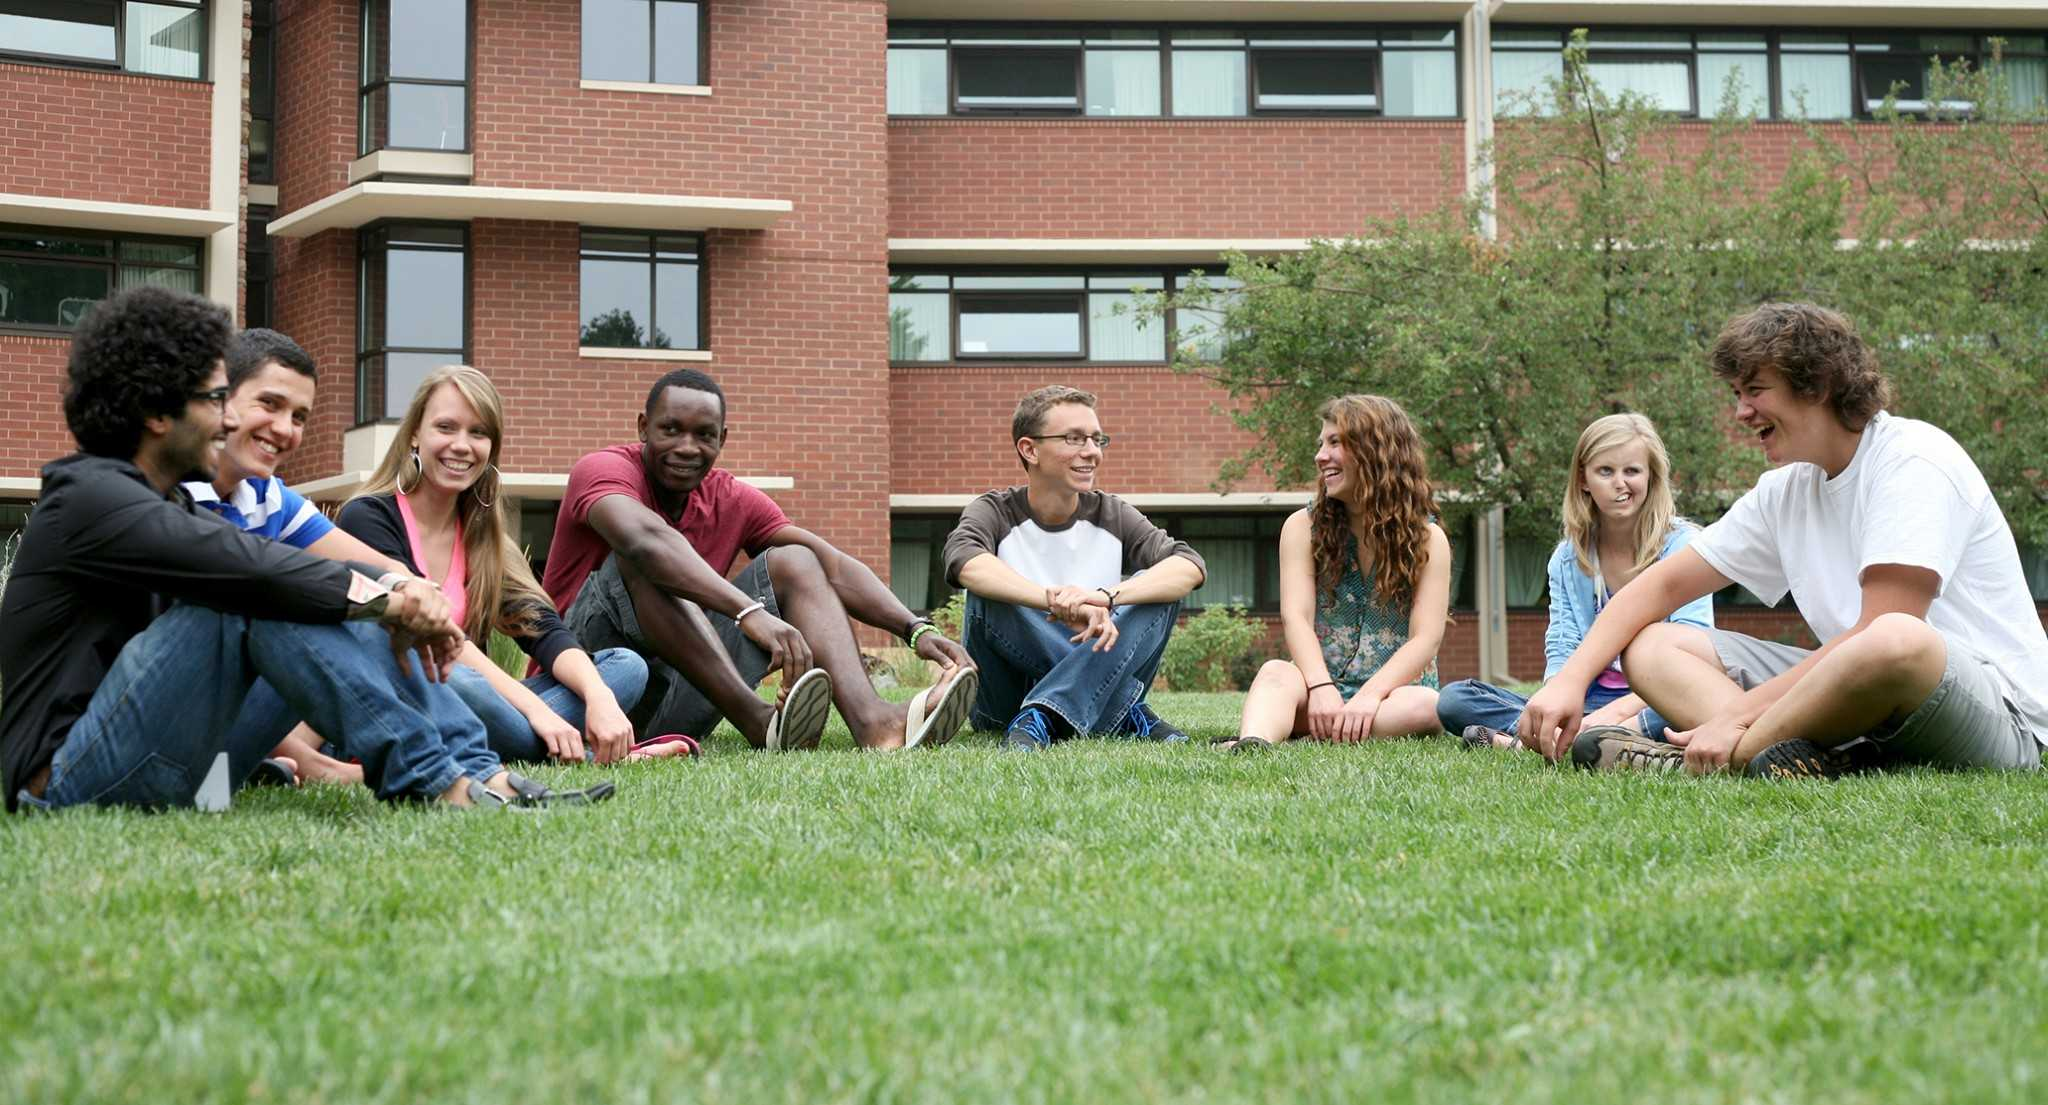 Members of the Global Village Residential Learning Community, a community of international and domestic students, meet outside of Parmelee Hall Monday. Global Village is just one of many programs in place at CSU to support a growing population of international students from over 80 countries around the world.